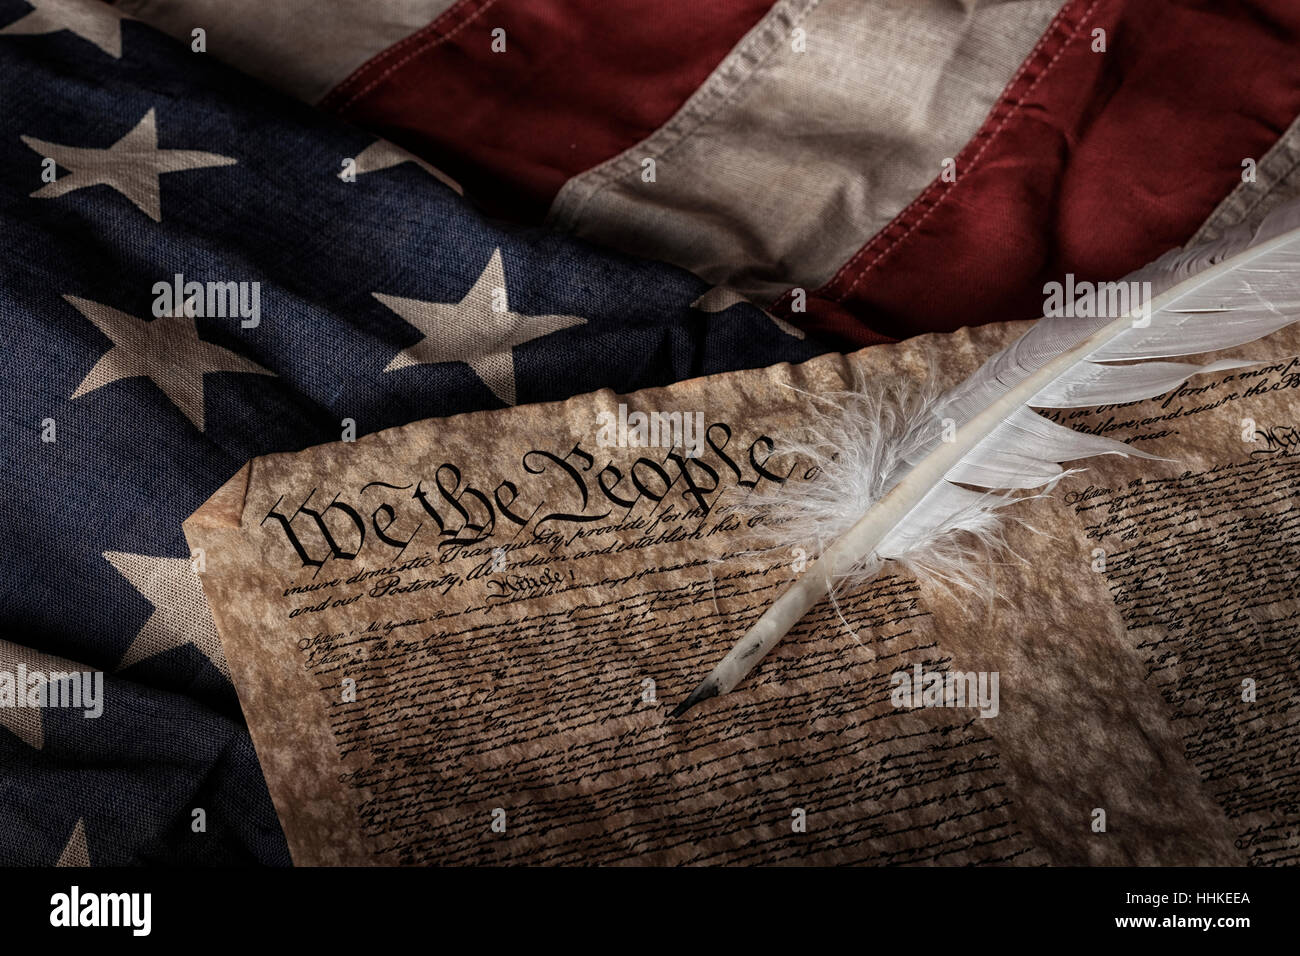 U.S. constitution and quill pen on an old and worn US flag - Stock Image